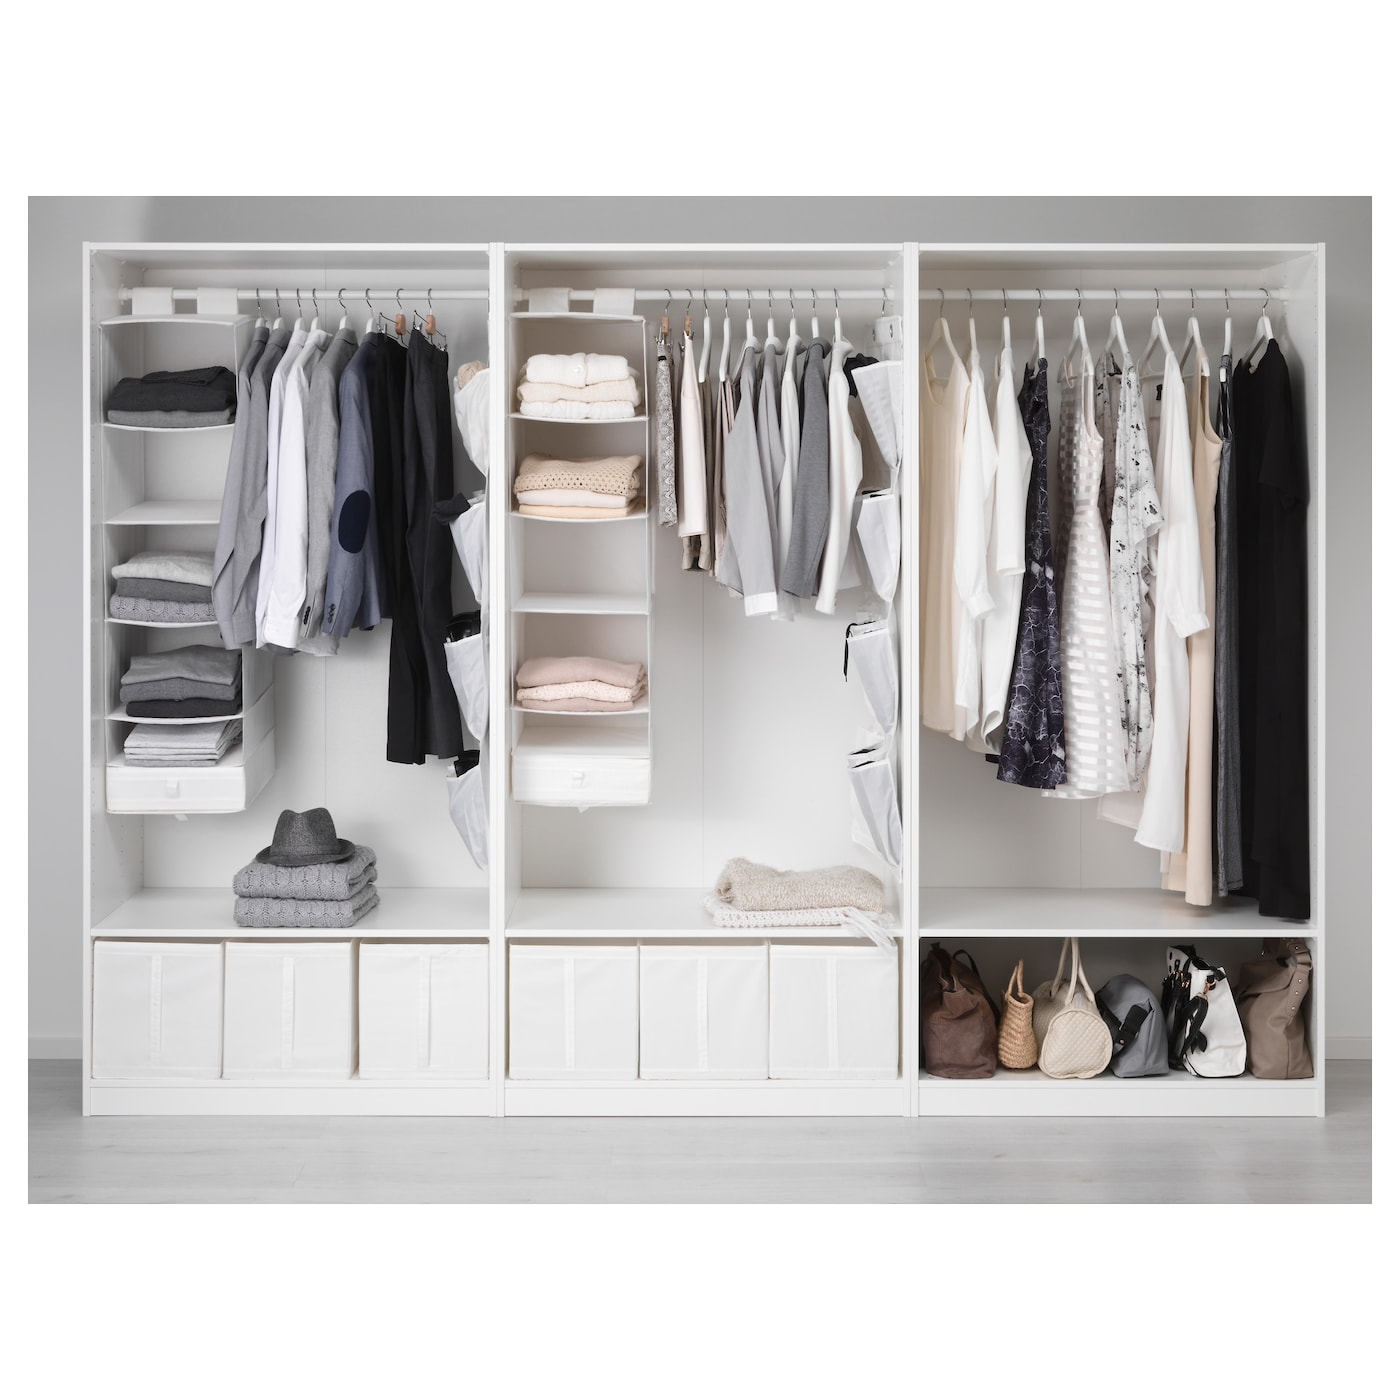 pax wardrobe white bergsbo vikedal 300x60x201 cm ikea. Black Bedroom Furniture Sets. Home Design Ideas